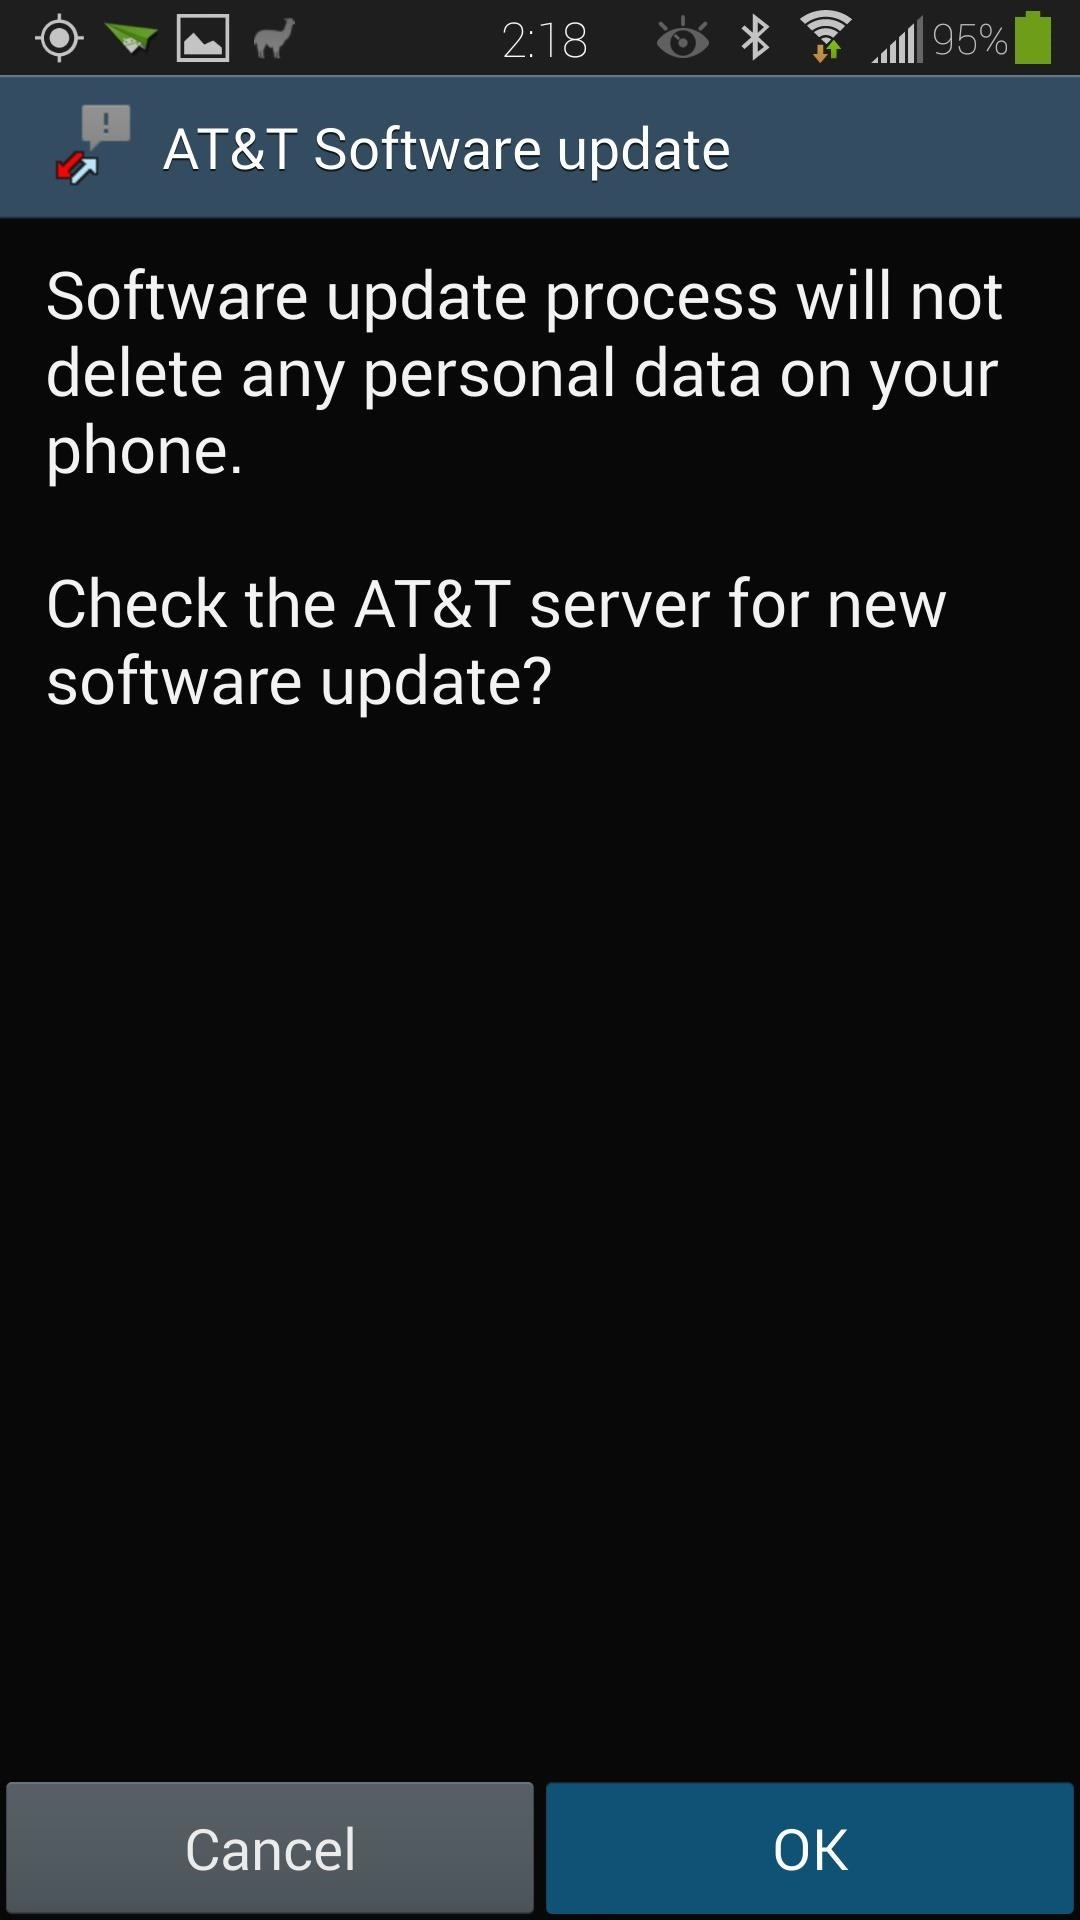 Android 4.4.2 KitKat Update Rolling Out Right Now for Your AT&T Samsung Galaxy S4